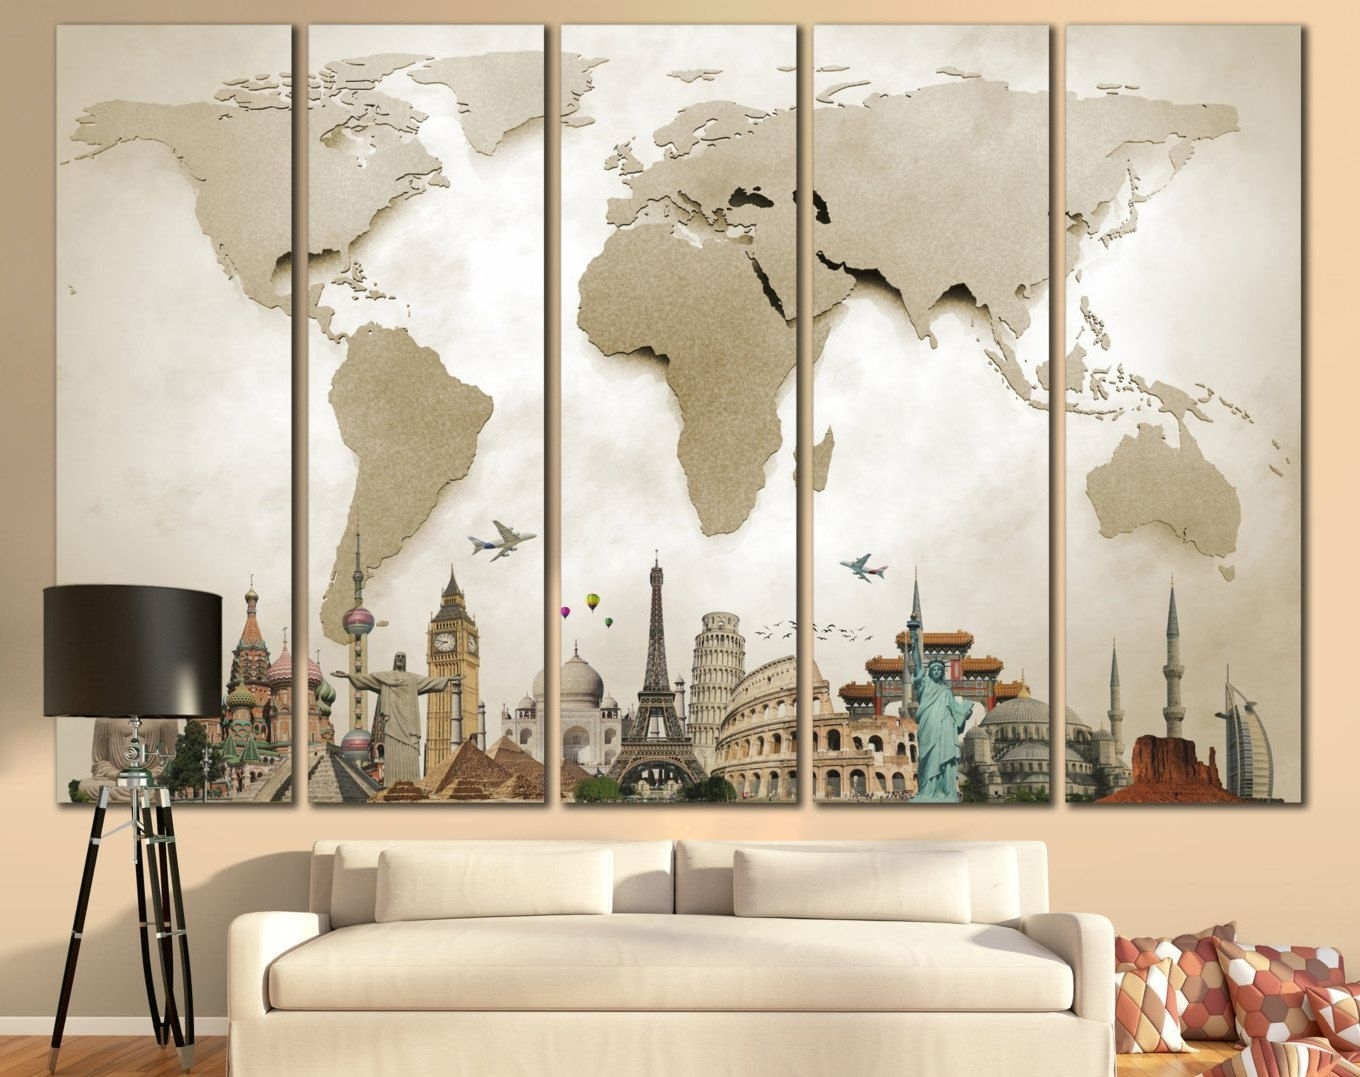 Map Of World Wall Art | Changyuheng Intended For Current Map Of The World Wall Art (View 19 of 20)